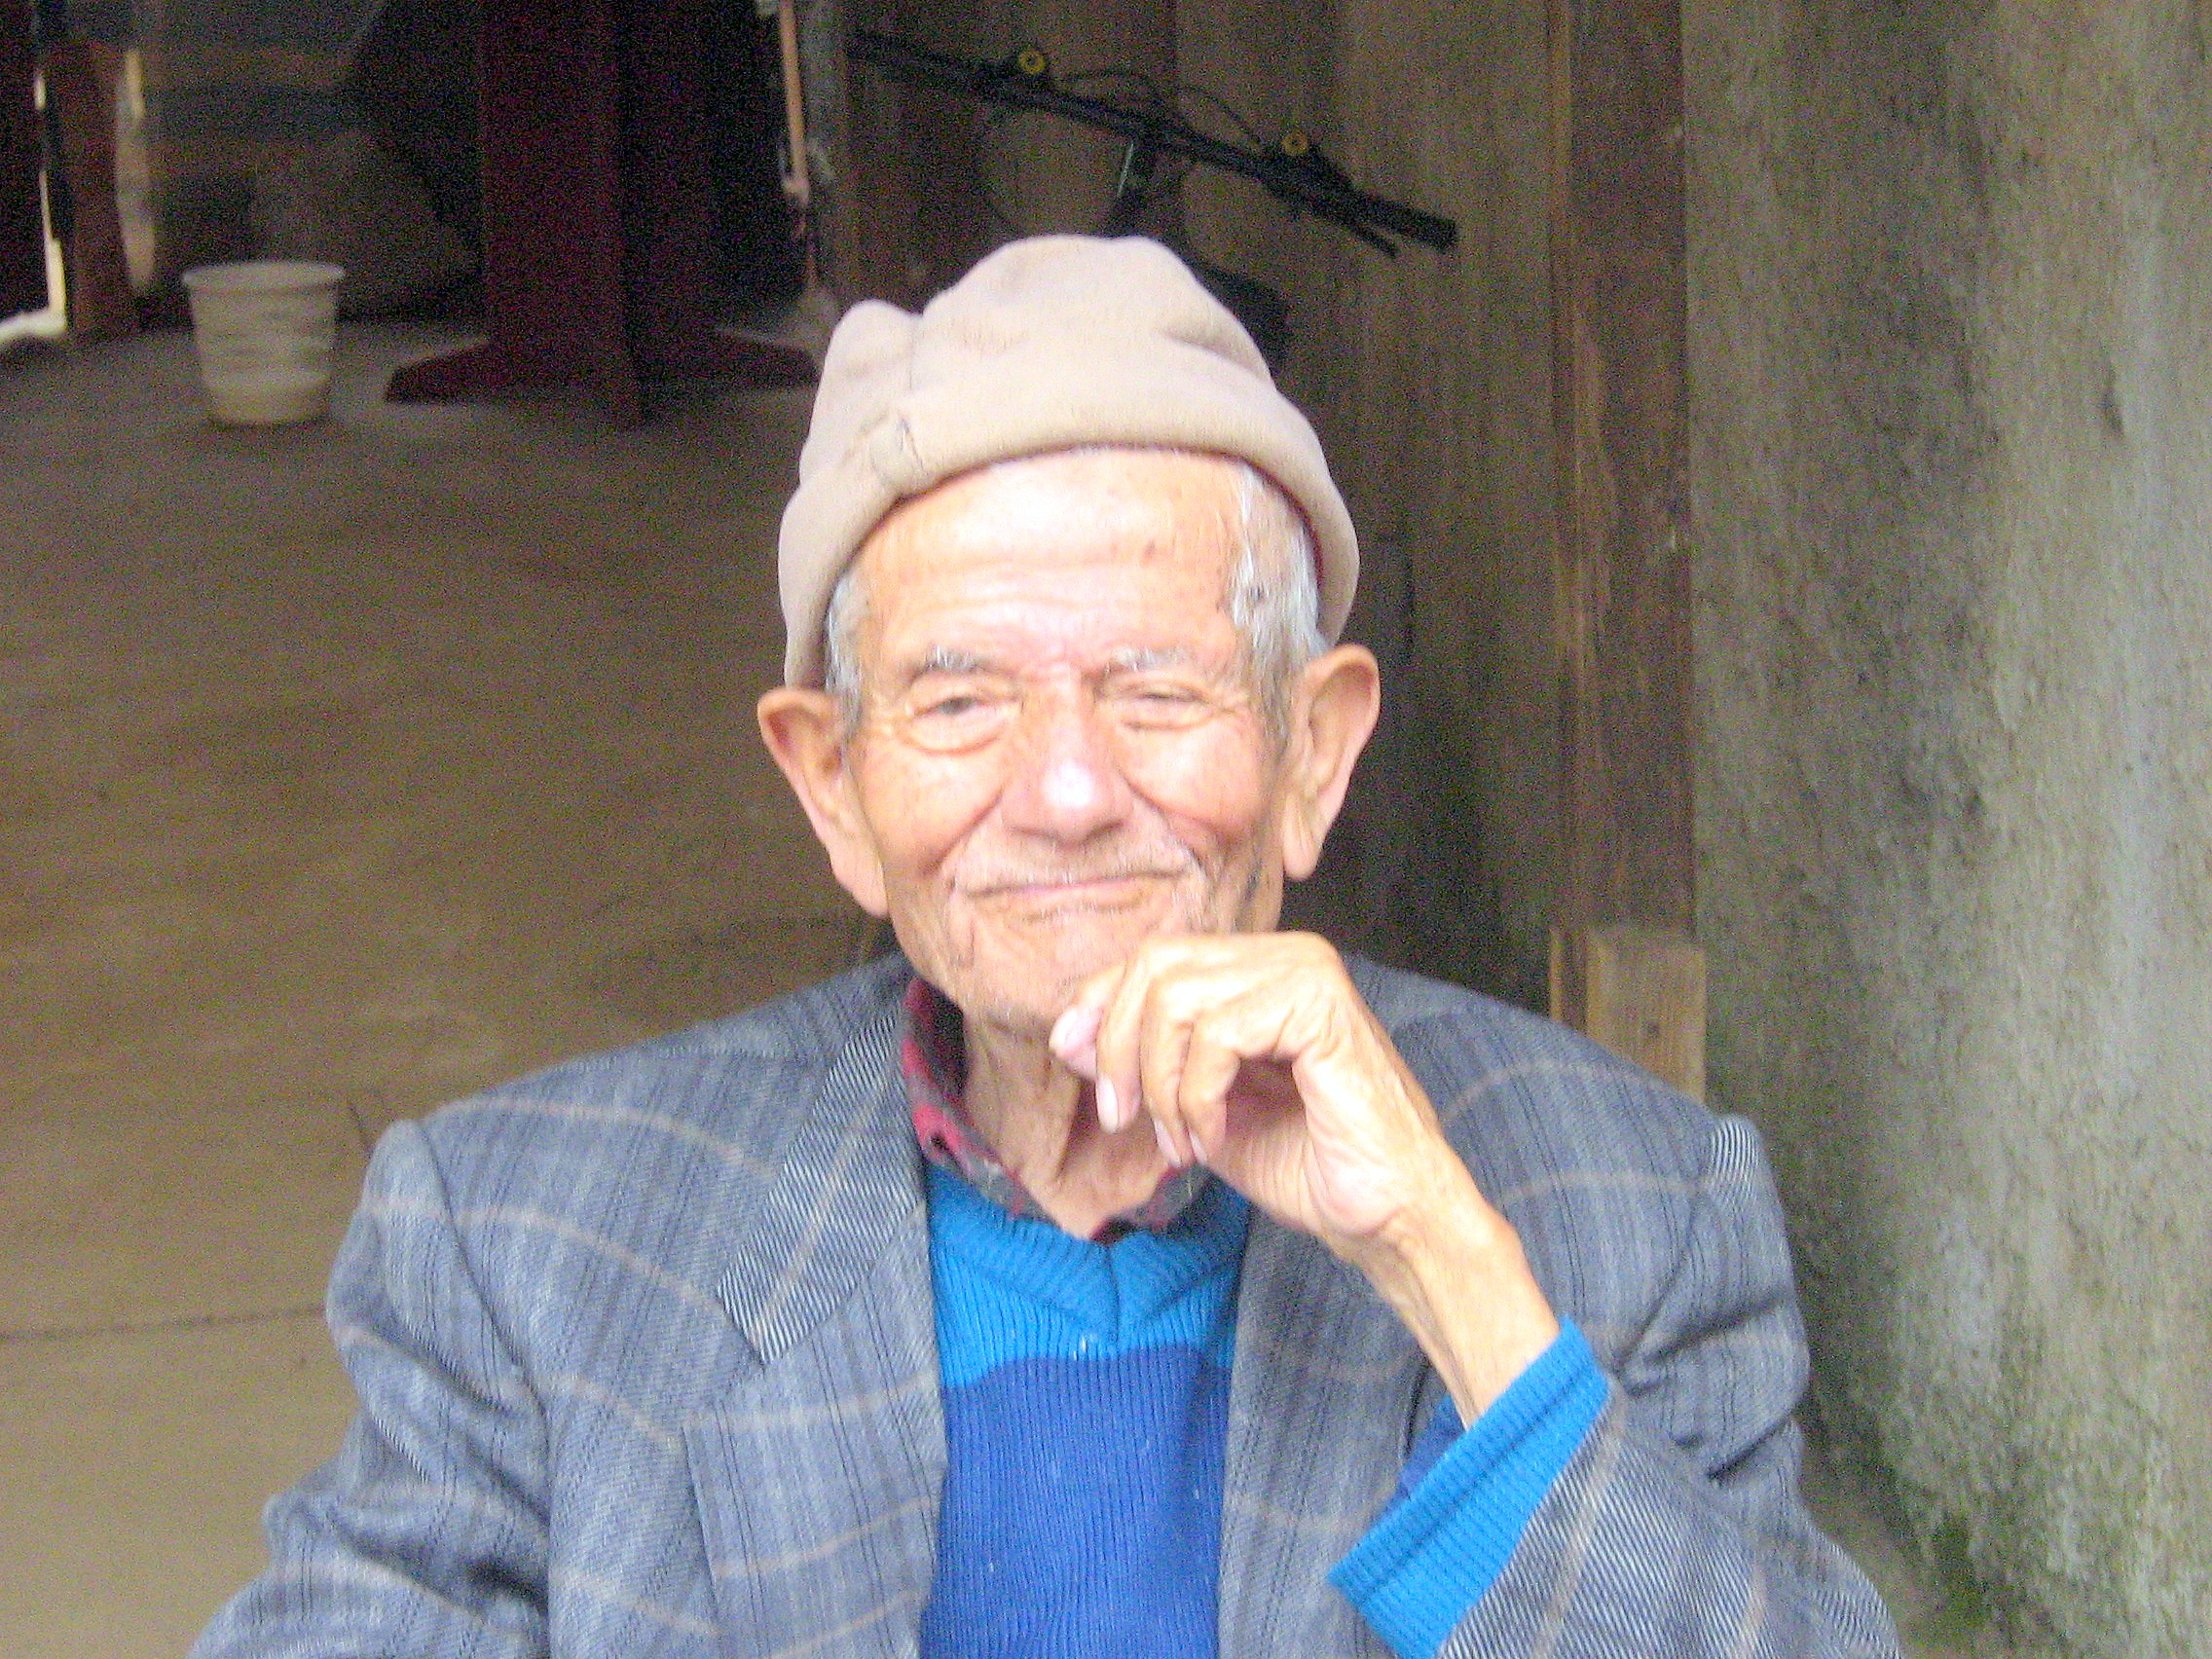 A smiling old man from Chile